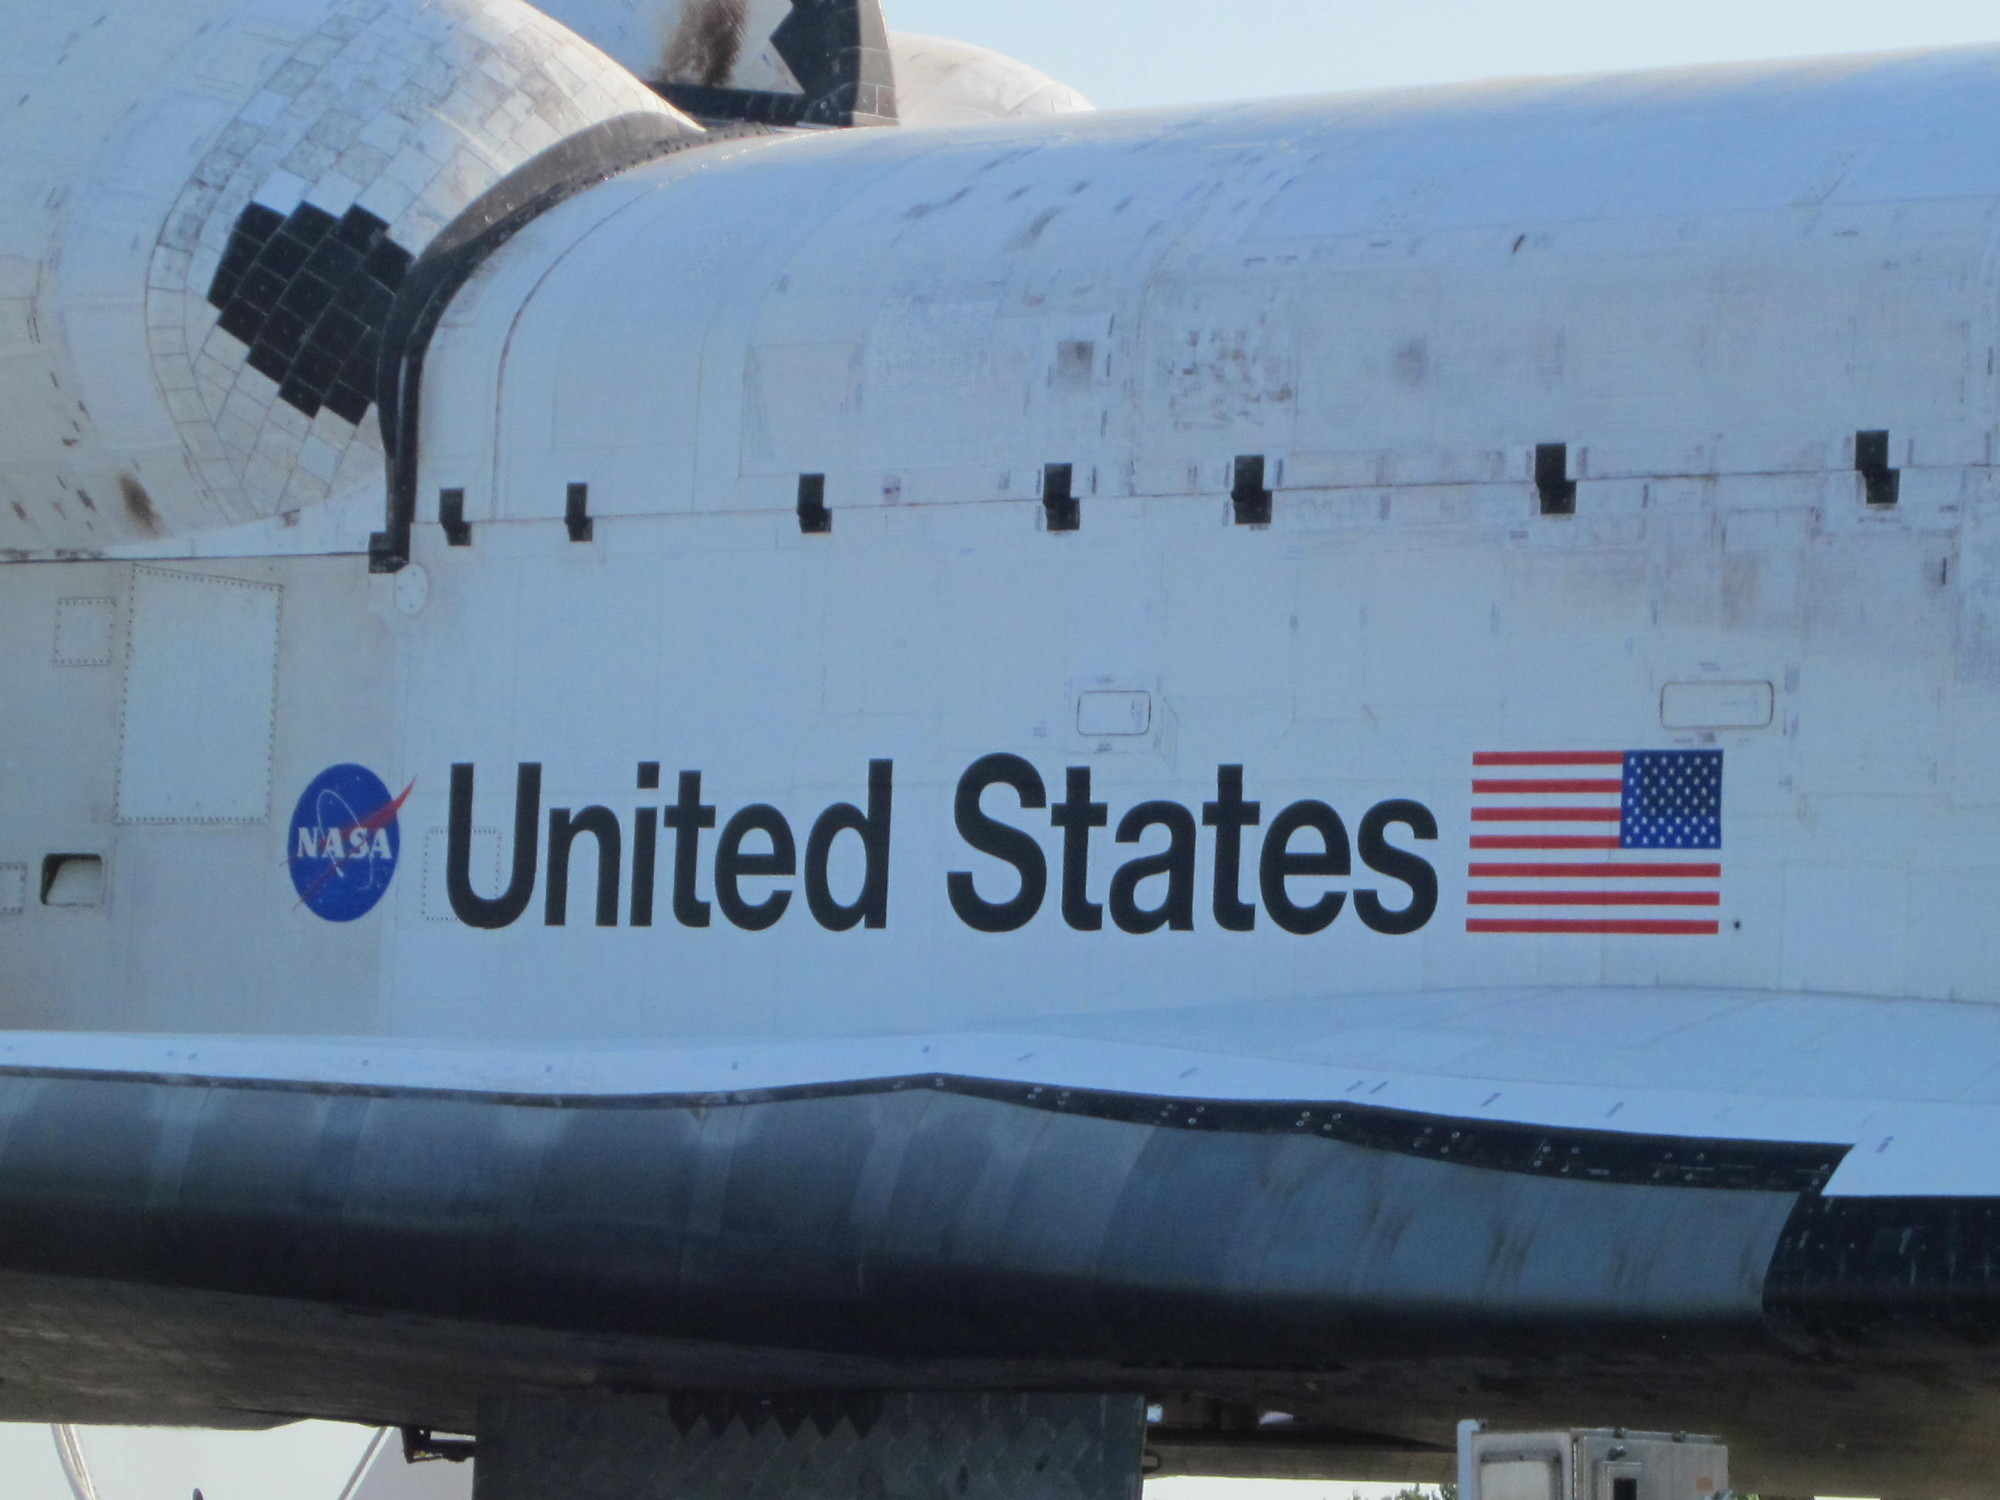 Starboard Exterior of Space Shuttle Atlantis